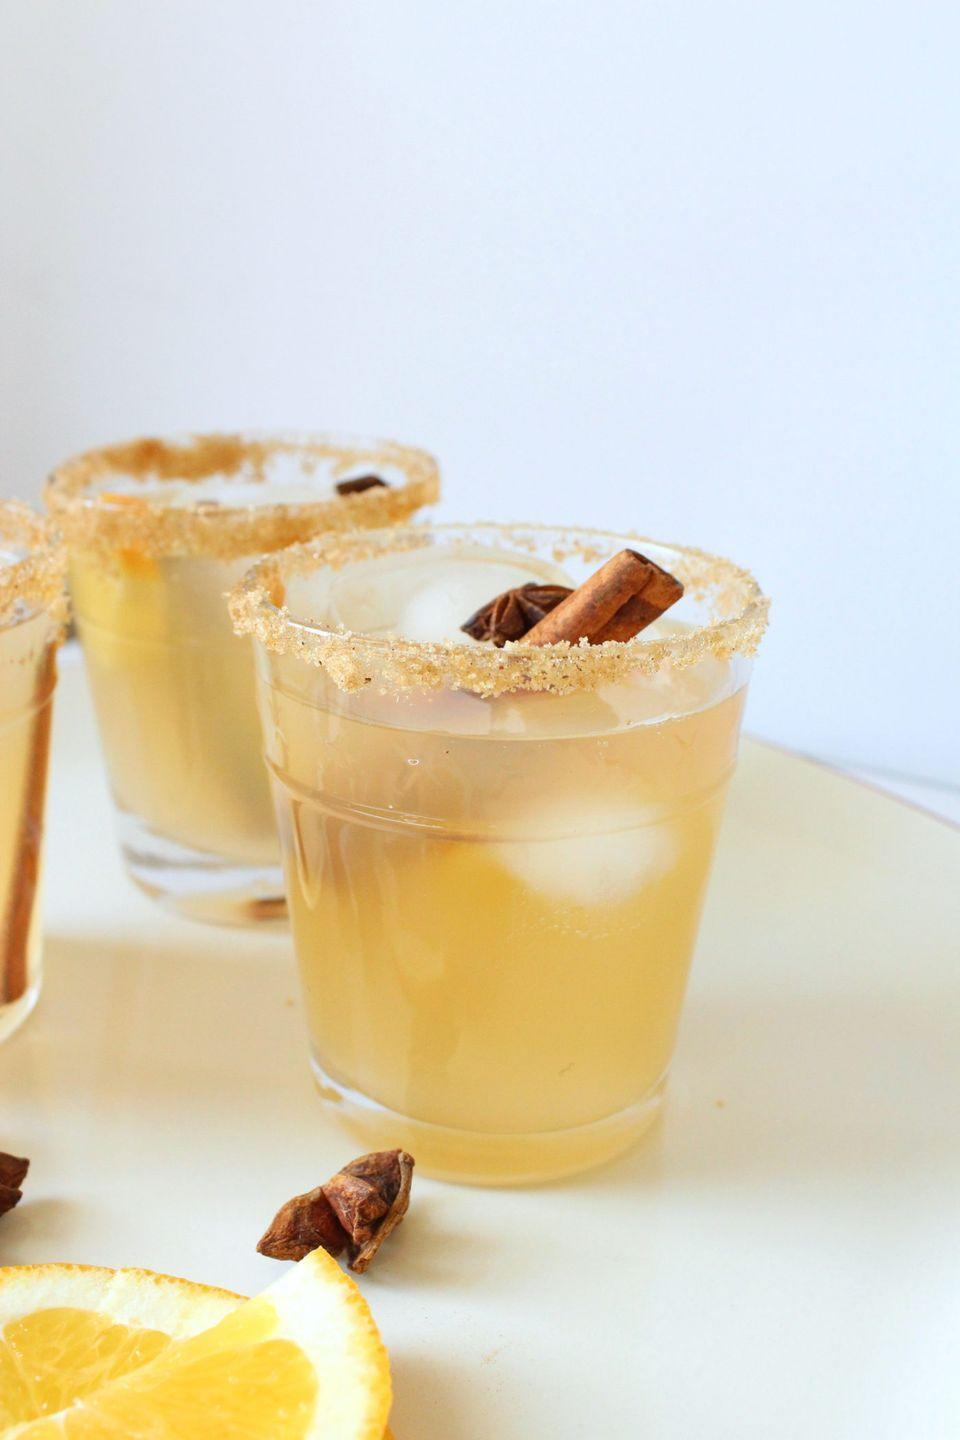 """<p>Looking to make a batch of margaritas perfect for fall? This batch of apple cider-infused sips will do!</p><p><strong>Get the recipe at <a href=""""http://eatdrinkfrolic.com/2018/12/apple-cider-margaritas.html"""" rel=""""nofollow noopener"""" target=""""_blank"""" data-ylk=""""slk:Eat Drink Frolic"""" class=""""link rapid-noclick-resp"""">Eat Drink Frolic</a>.</strong></p><p><a class=""""link rapid-noclick-resp"""" href=""""https://go.redirectingat.com?id=74968X1596630&url=https%3A%2F%2Fwww.walmart.com%2Fsearch%2F%3Fquery%3Dcinnamon%2Bsticks&sref=https%3A%2F%2Fwww.thepioneerwoman.com%2Ffood-cooking%2Fmeals-menus%2Fg33510531%2Ffall-cocktail-recipes%2F"""" rel=""""nofollow noopener"""" target=""""_blank"""" data-ylk=""""slk:SHOP CINNAMON STICKS"""">SHOP CINNAMON STICKS</a></p>"""